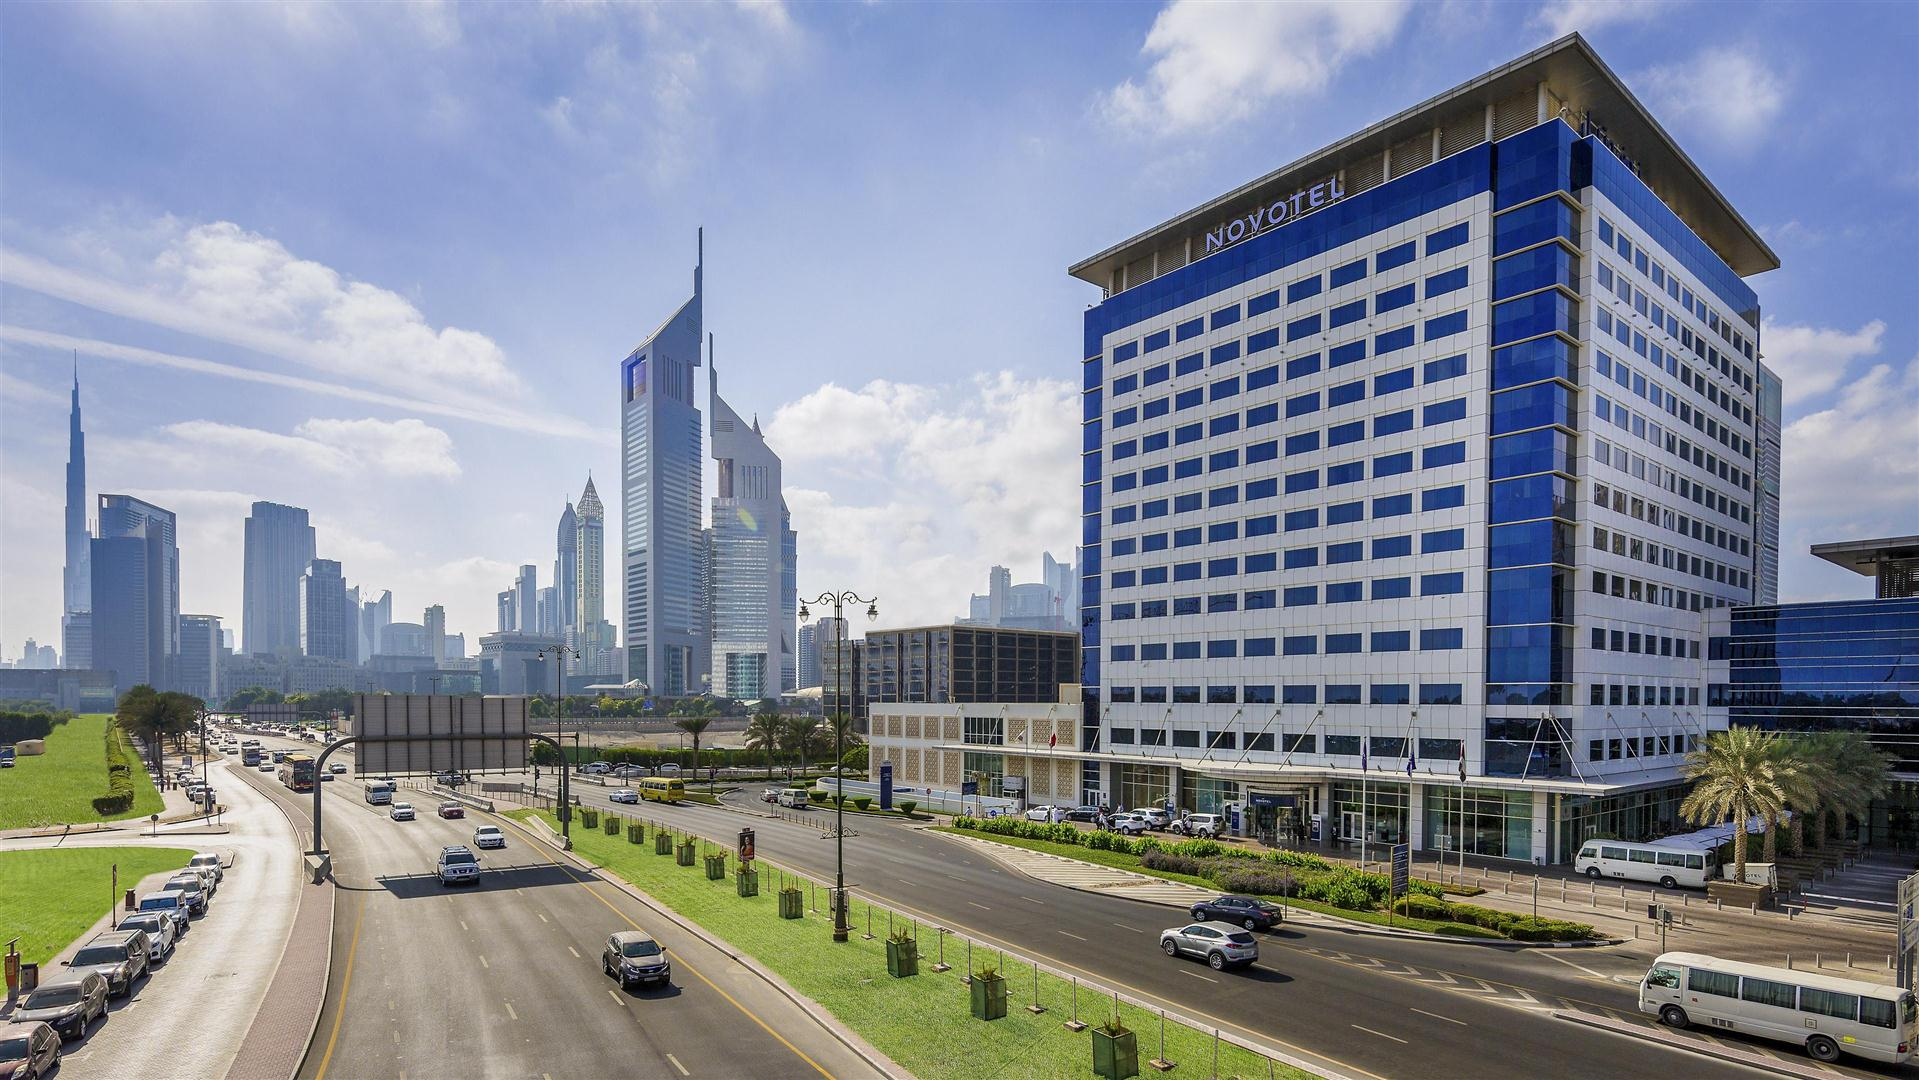 Meetings and events at novotel world trade centre dubai dubai ae gumiabroncs